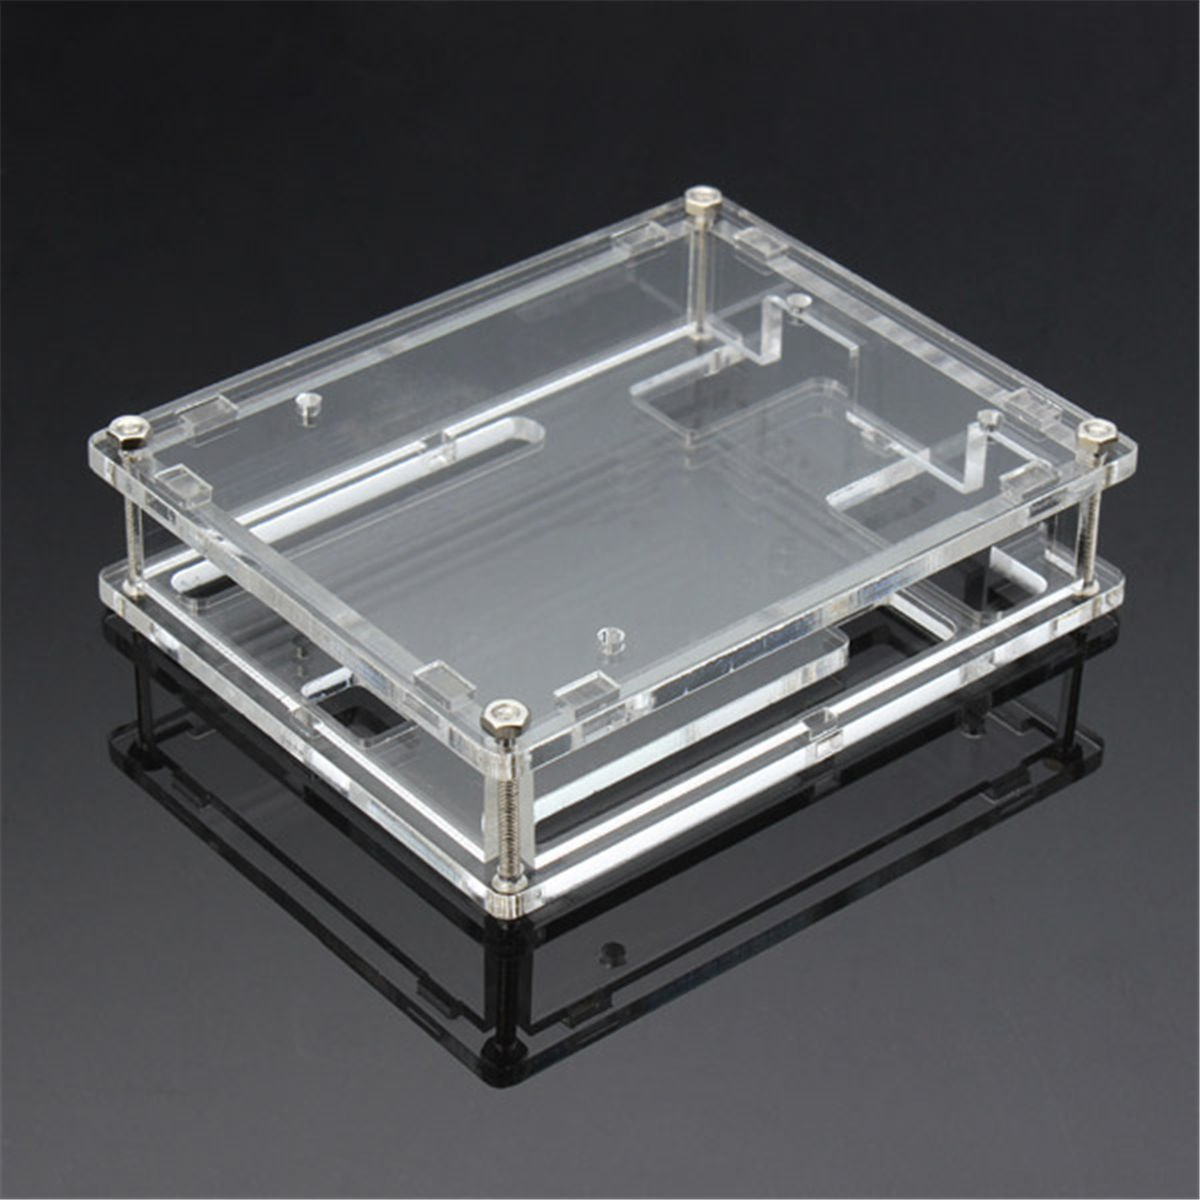 [Sintron] UNO R3 Transparent Gloss Acrylic Case Shell Enclosure Computer Box for Arduino Compatible UNO R3 V3 ATMEGA328P with instructions